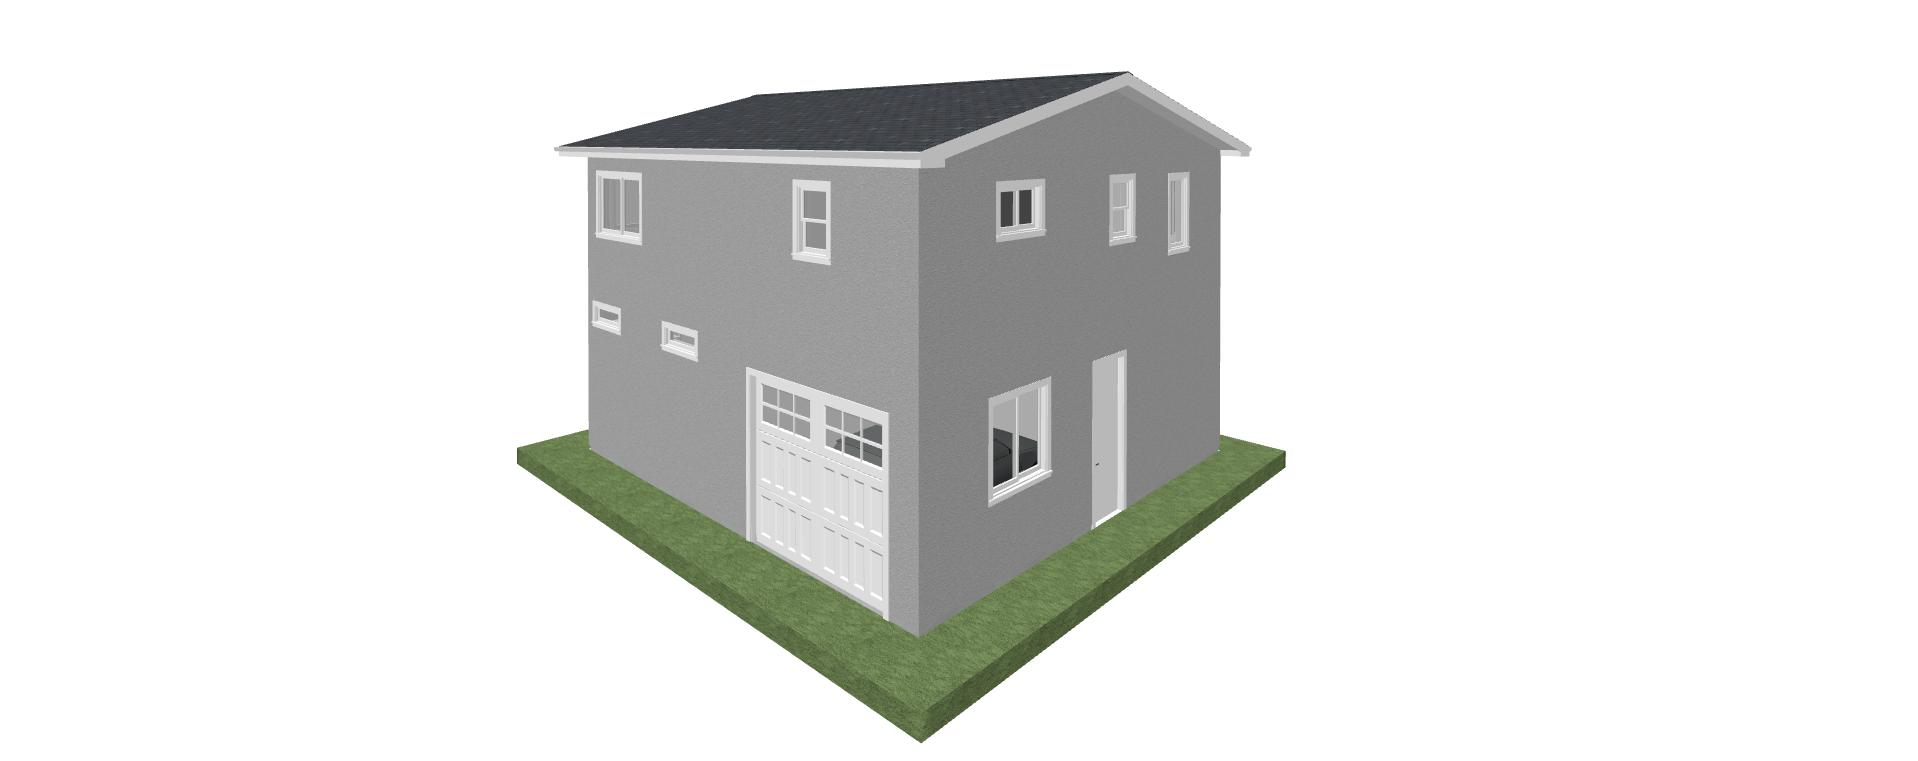 1,198 SQ.FT. 2 Story ADU